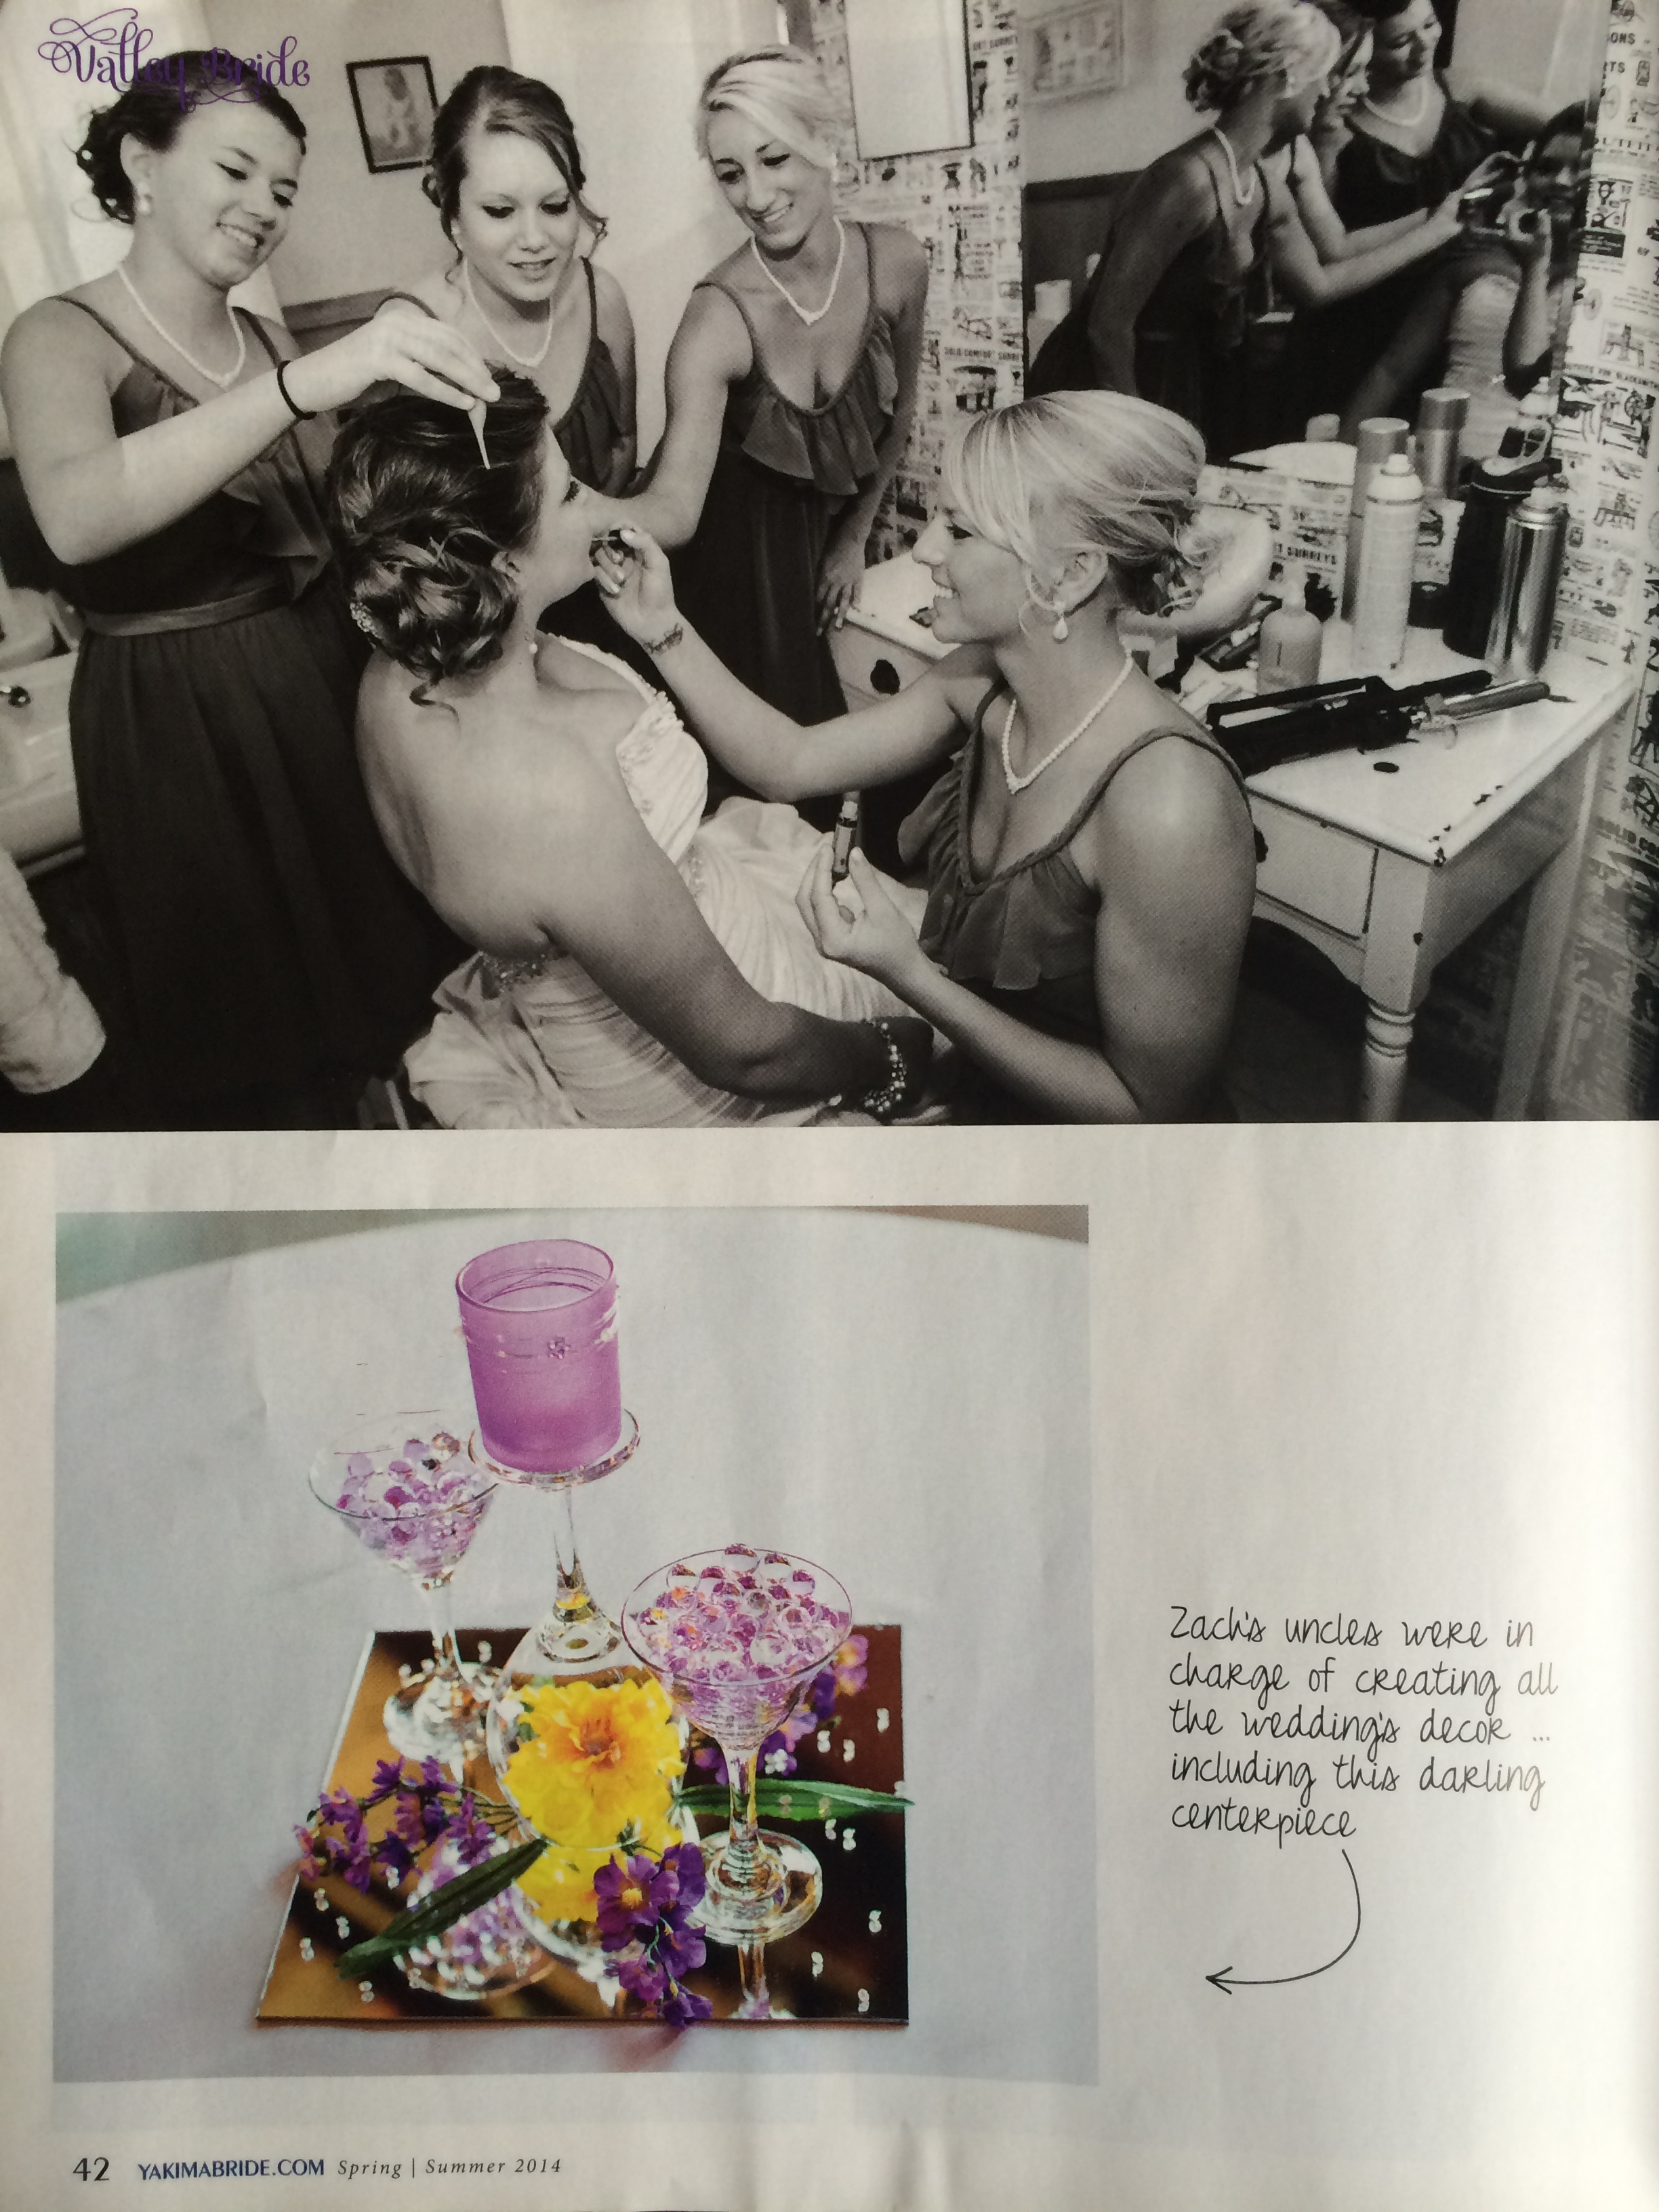 Salon Bellissima styled a bridal party of 10 people on site in Yakima, WA, July 2013.  The wedding was featured in Yakima Valley Bride later that year.